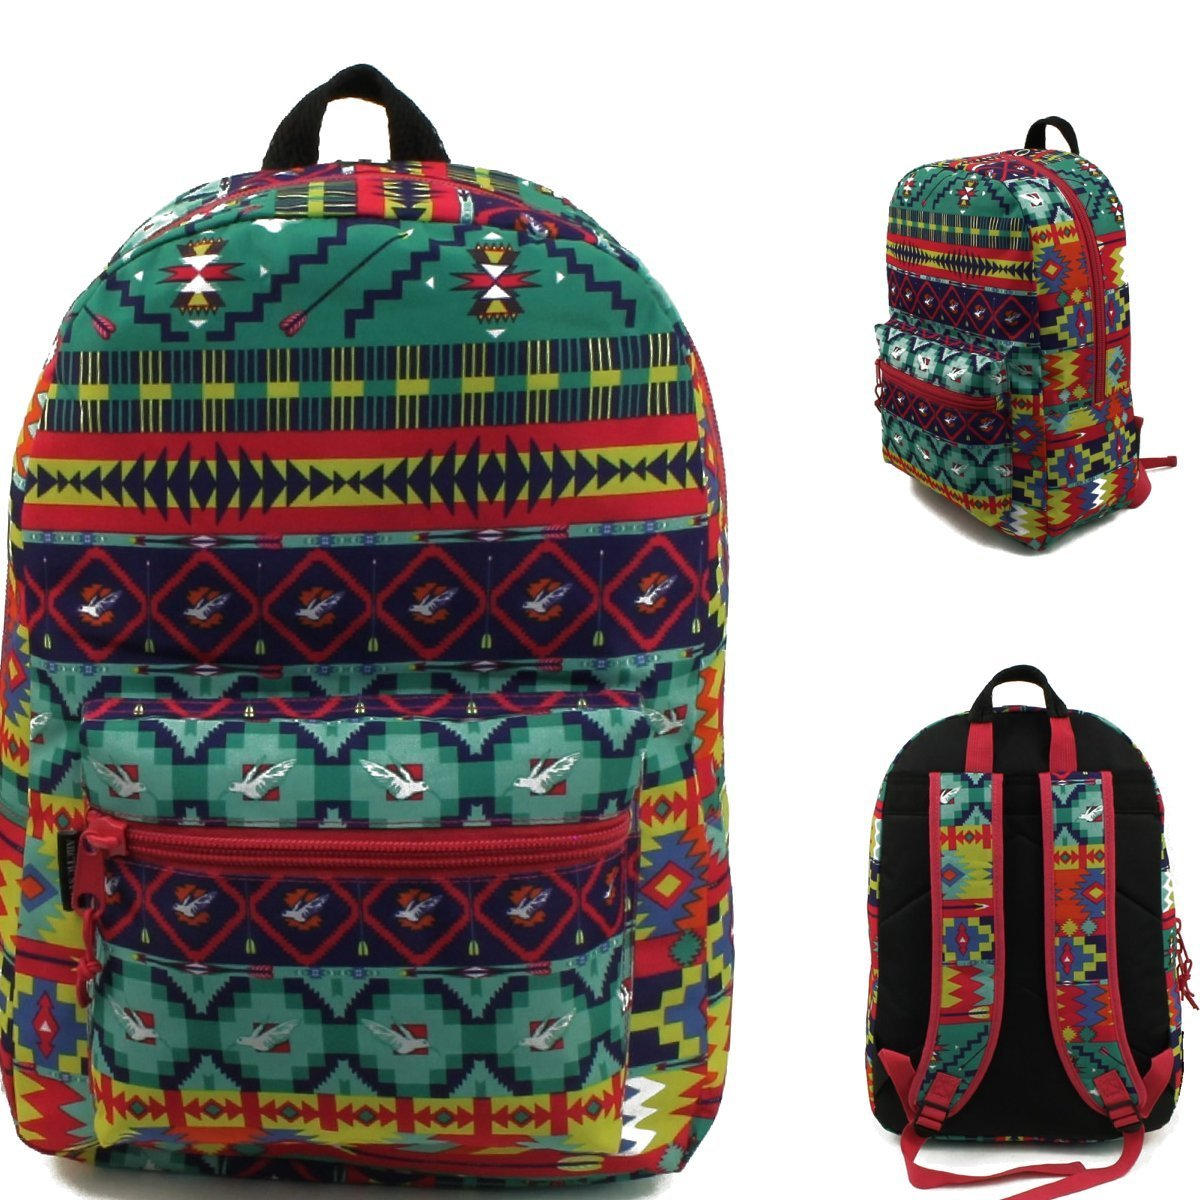 17'' Wholesale Padded Fashion Backpack - Case of 24 by Arctic Star (Image #1)